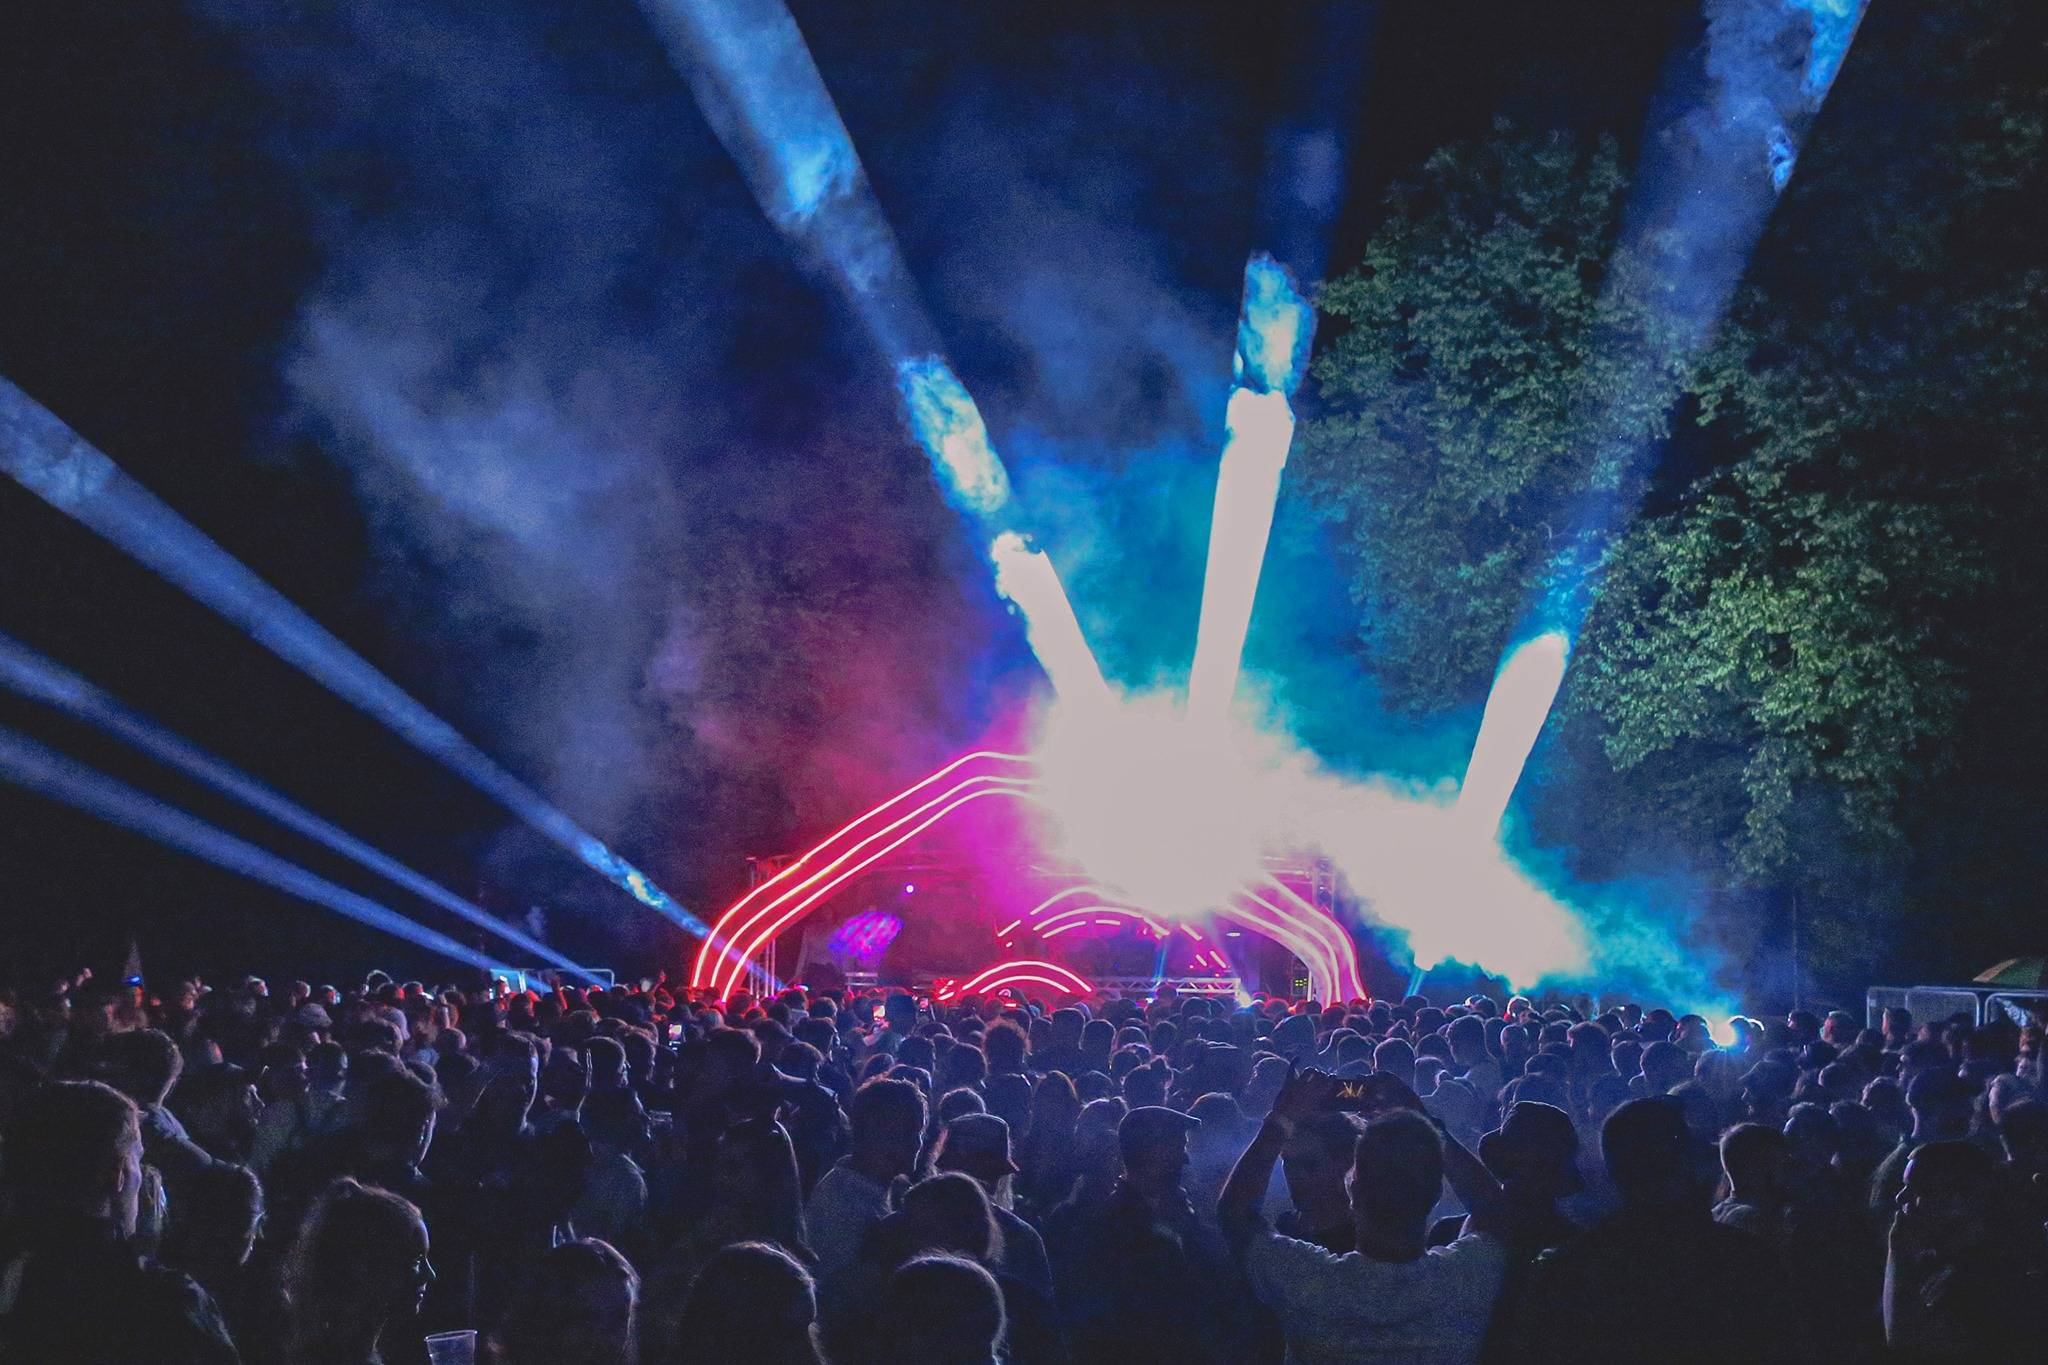 Hide&Seek present Life in Colour with an outstanding lineup for September 4th